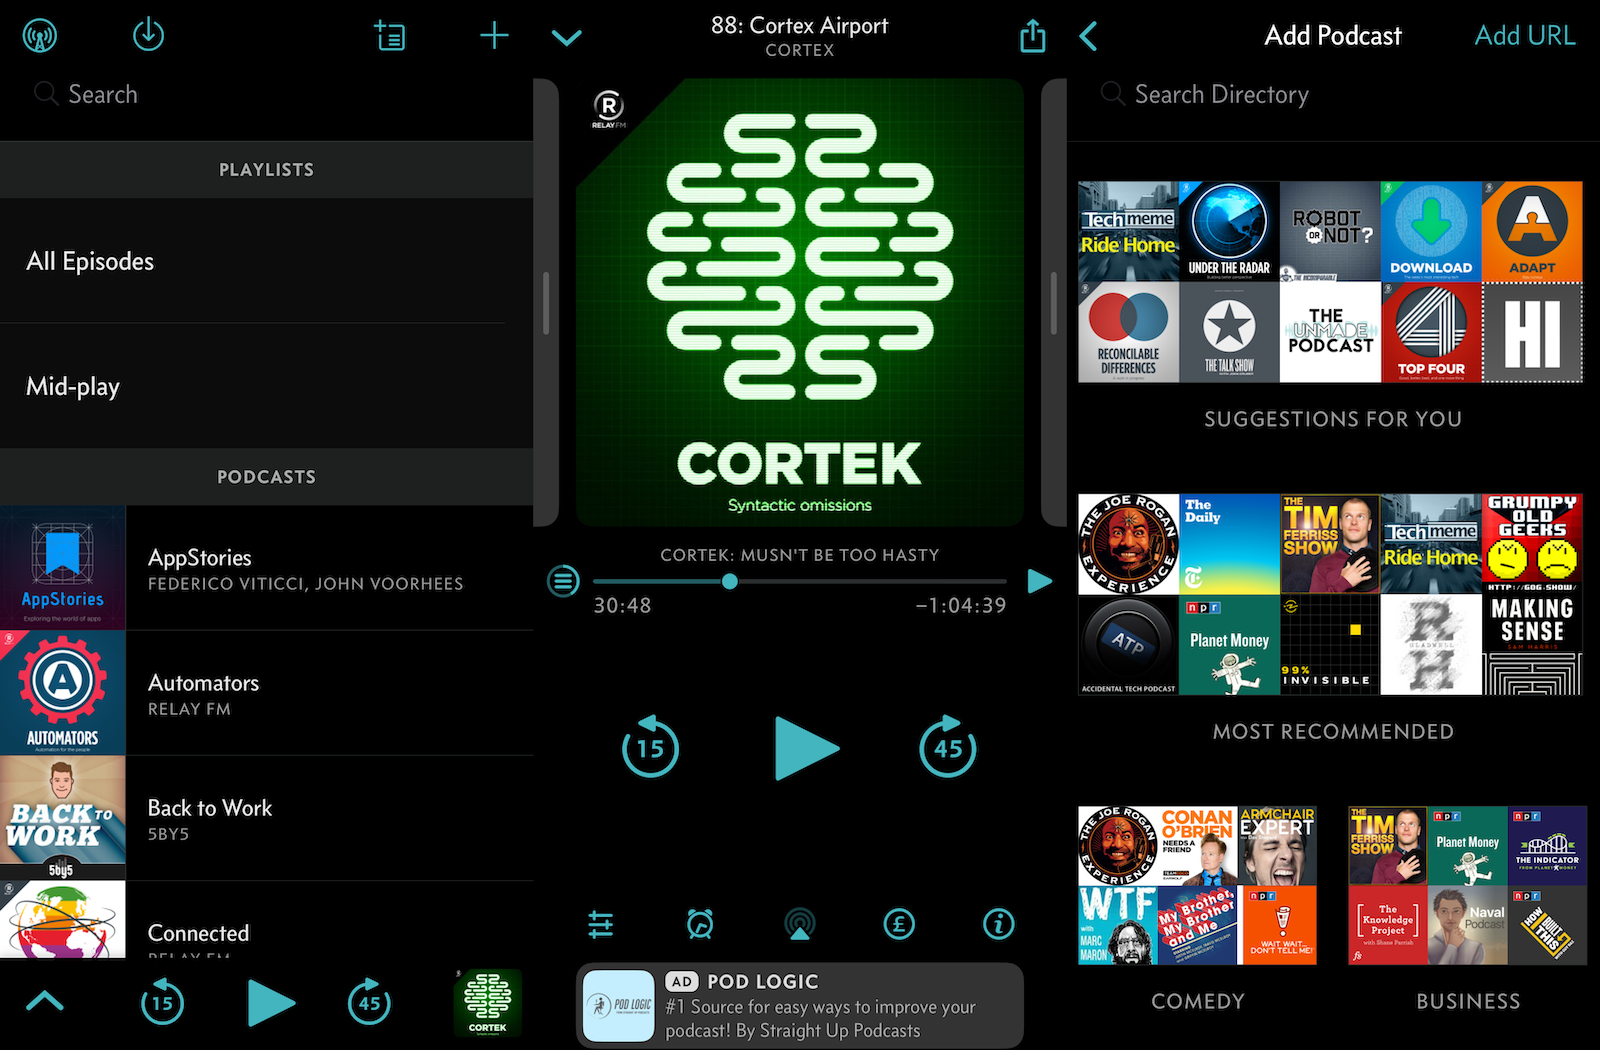 Overcast podcast menu, play screen, and Search menu on a phone.